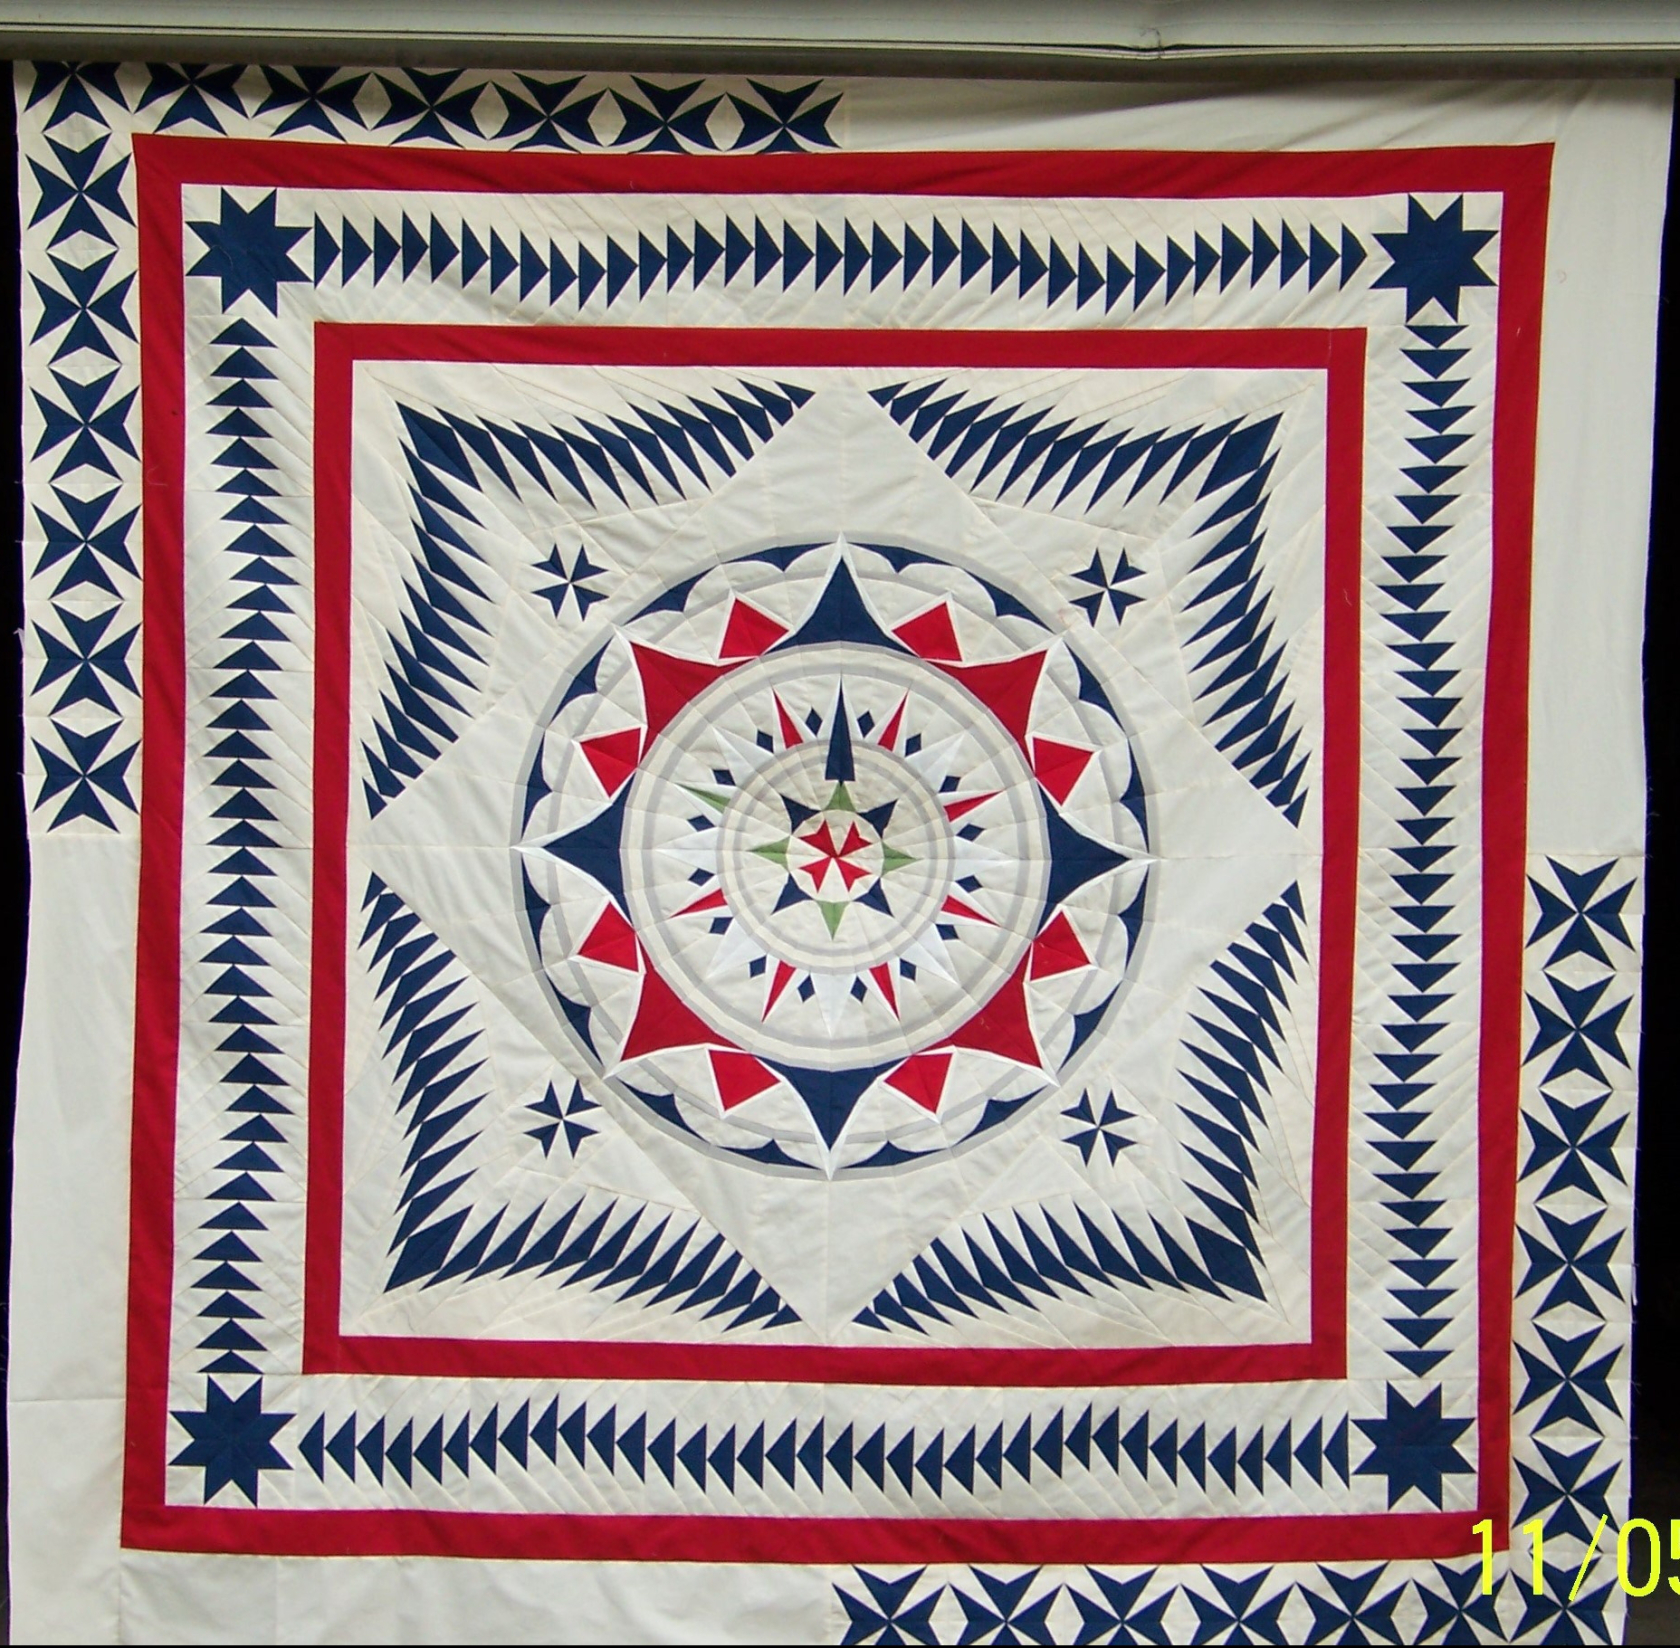 Denise's Wind Rose quilt from Week 40